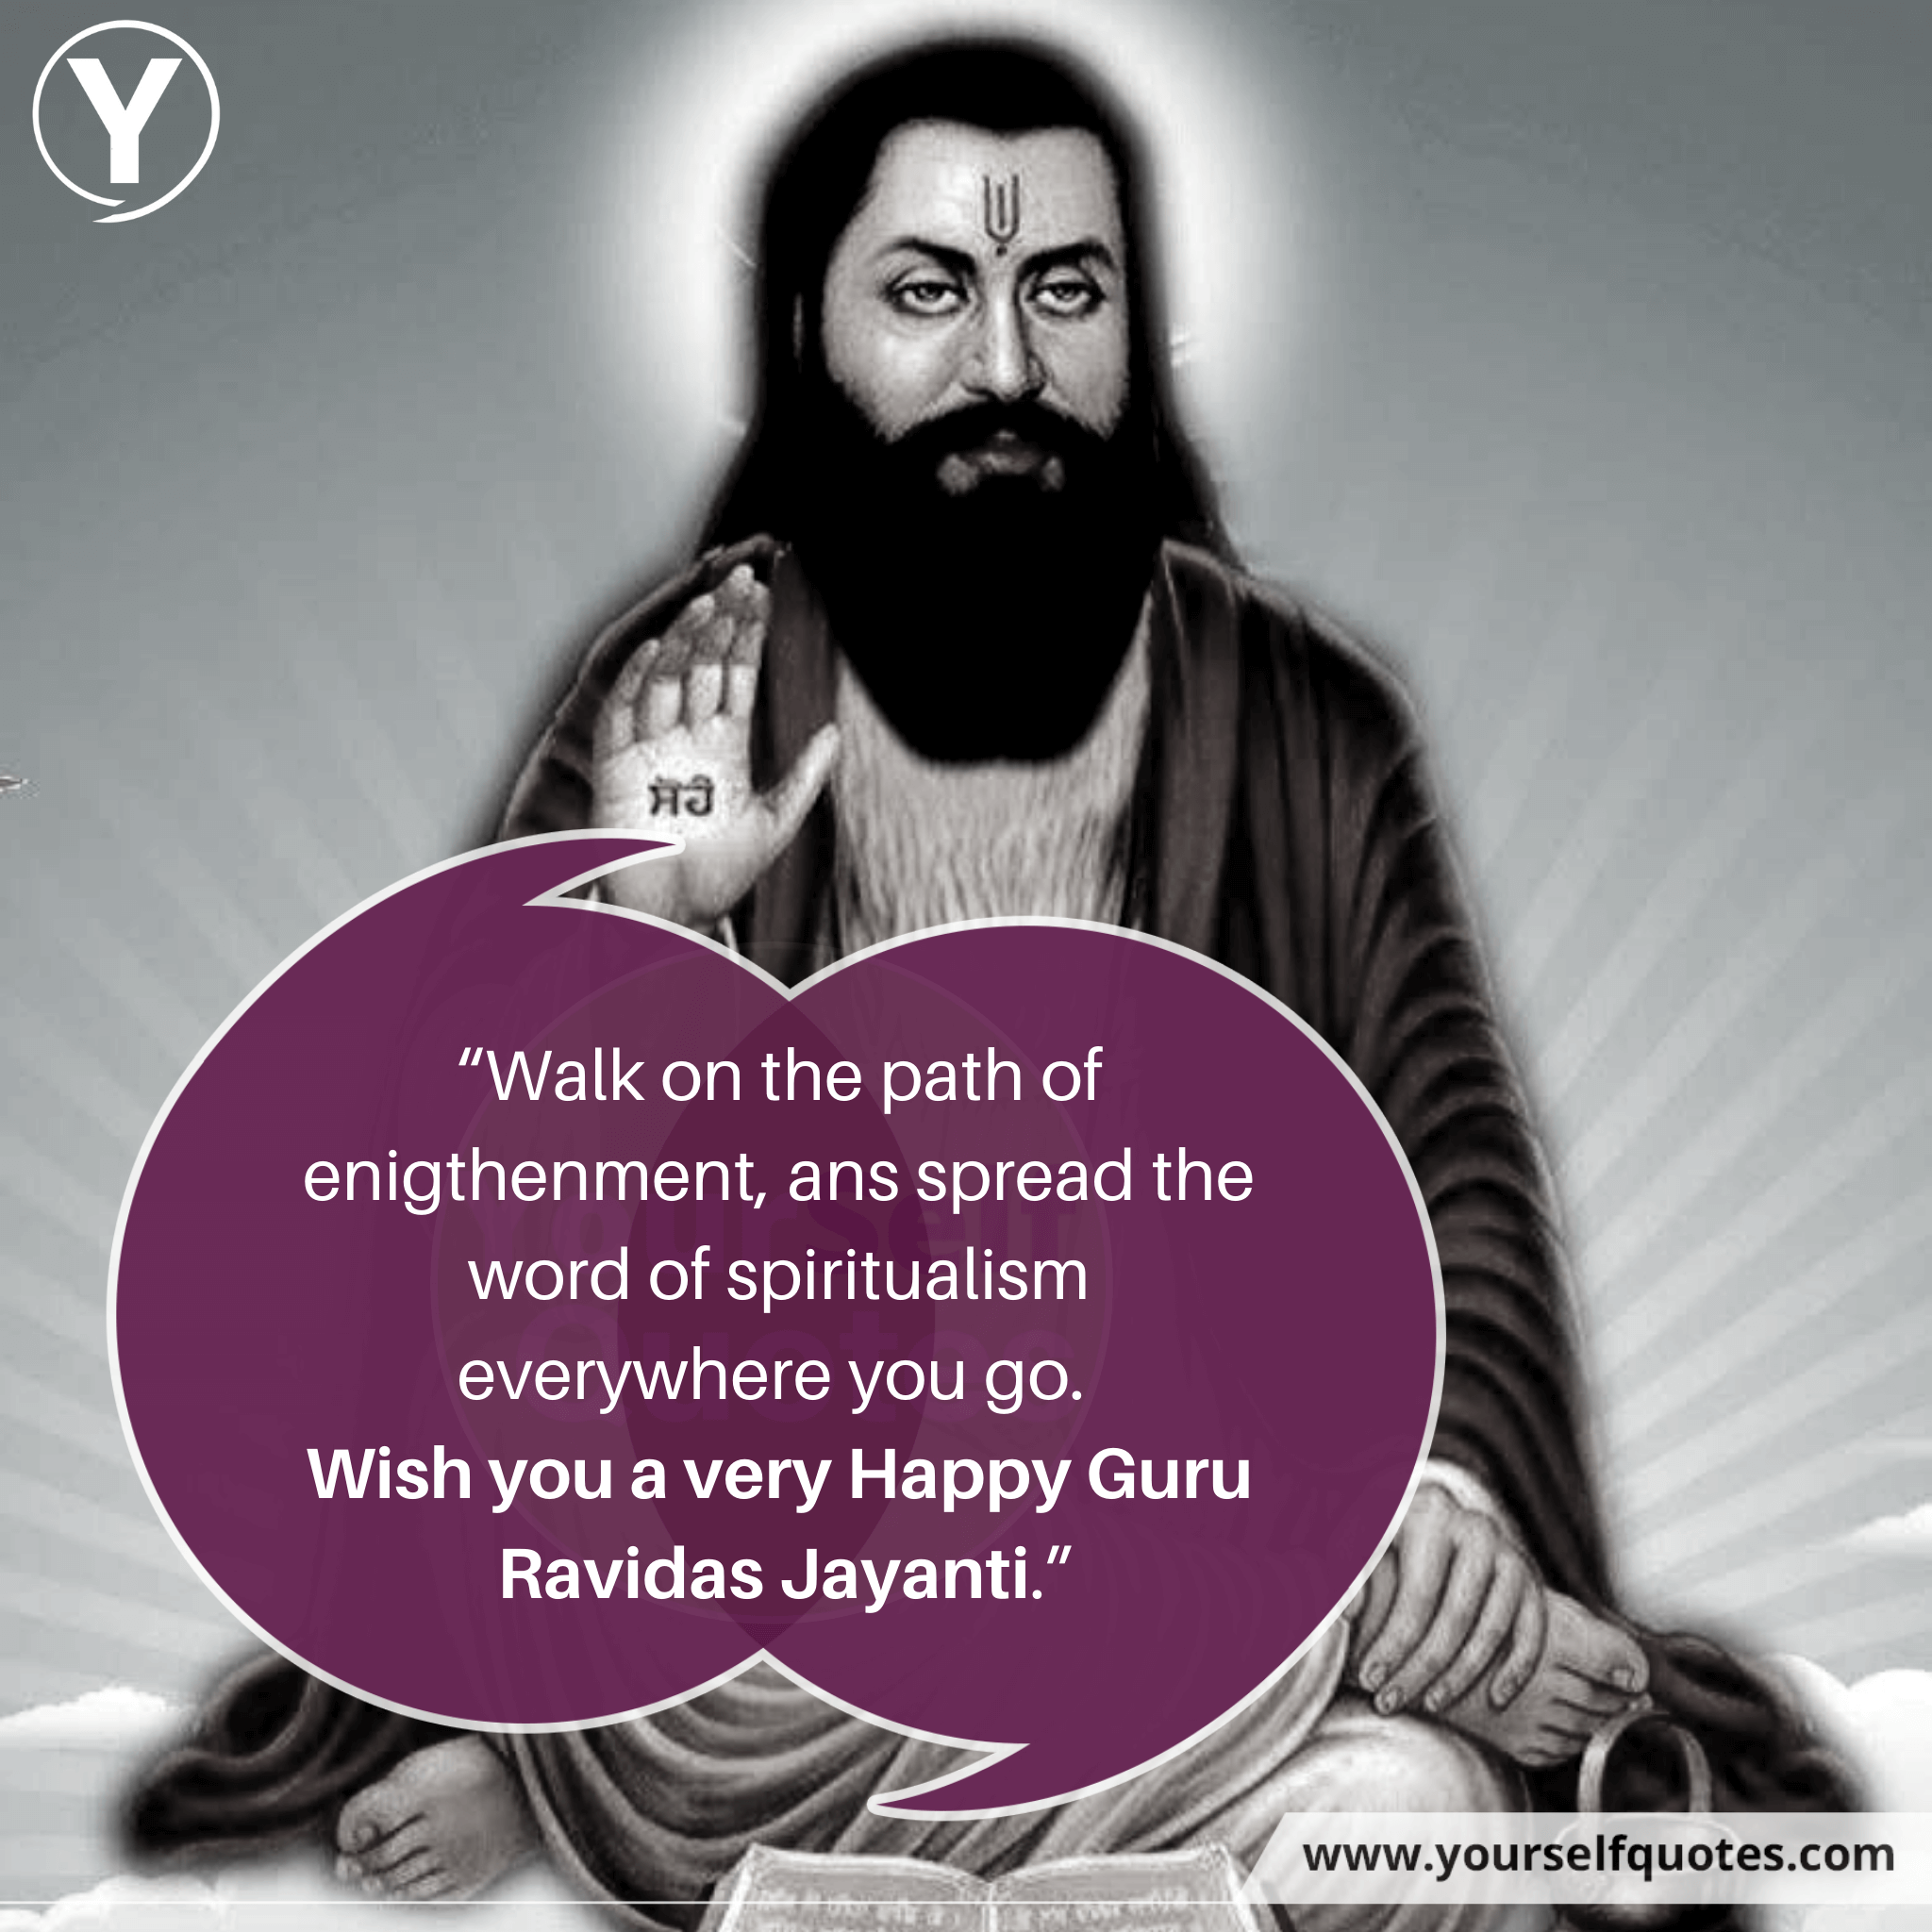 Wish you a very Happy Guru Ravidas Jayanti